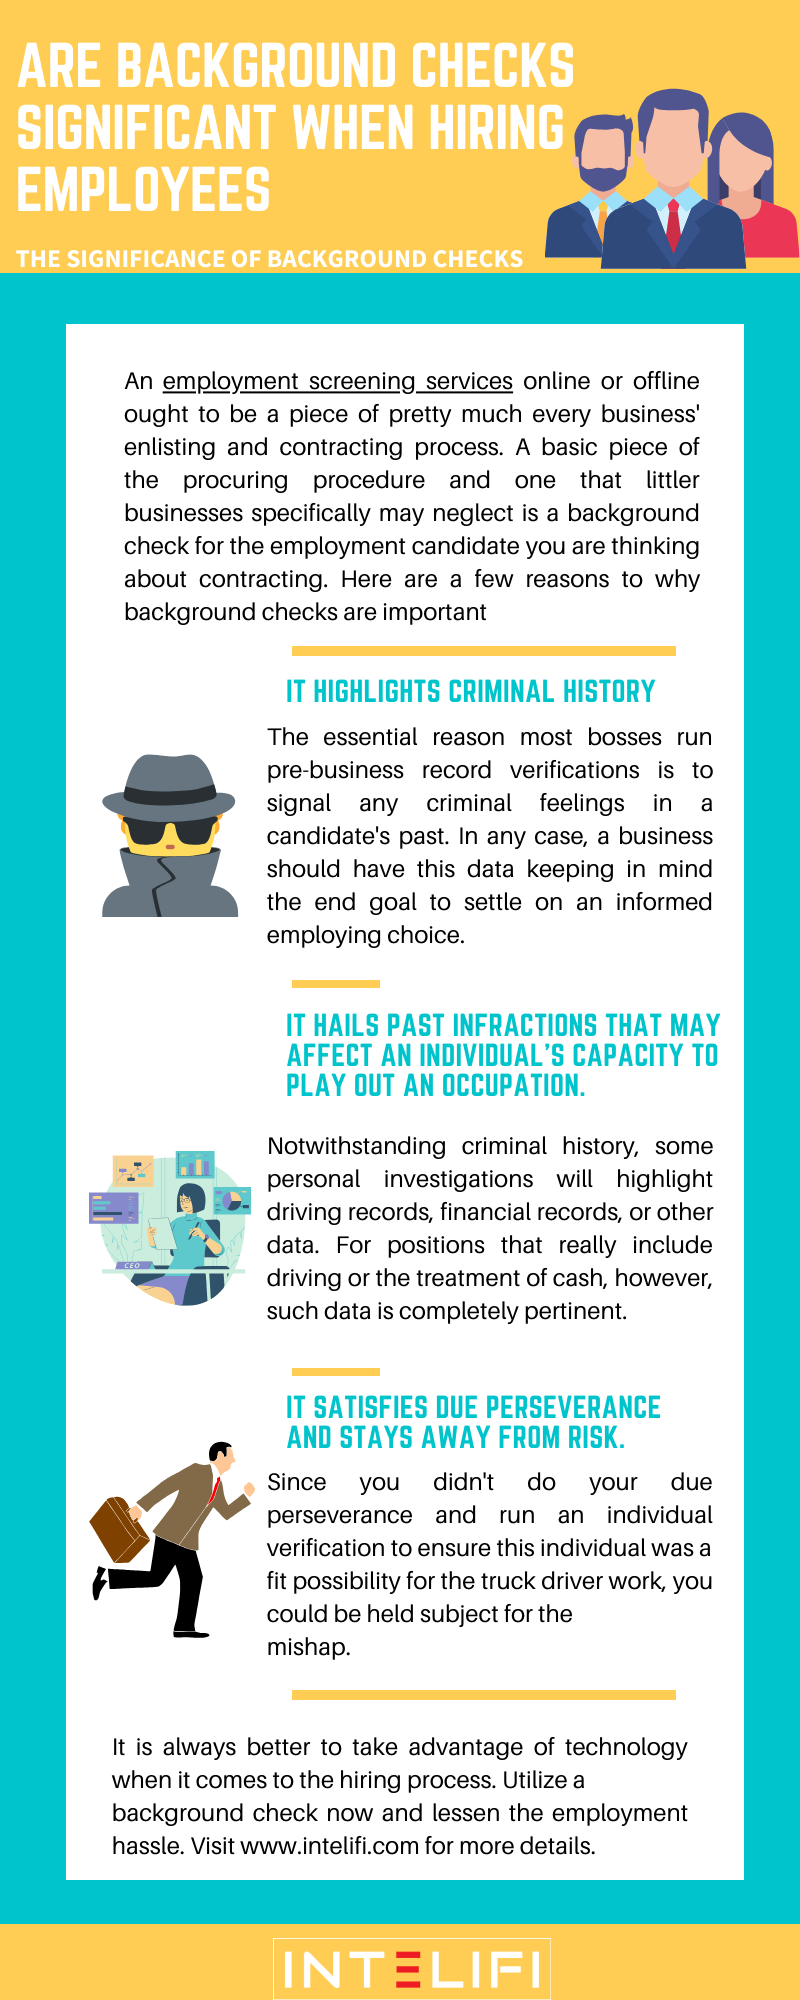 How Long Does Background Check Take For Employment